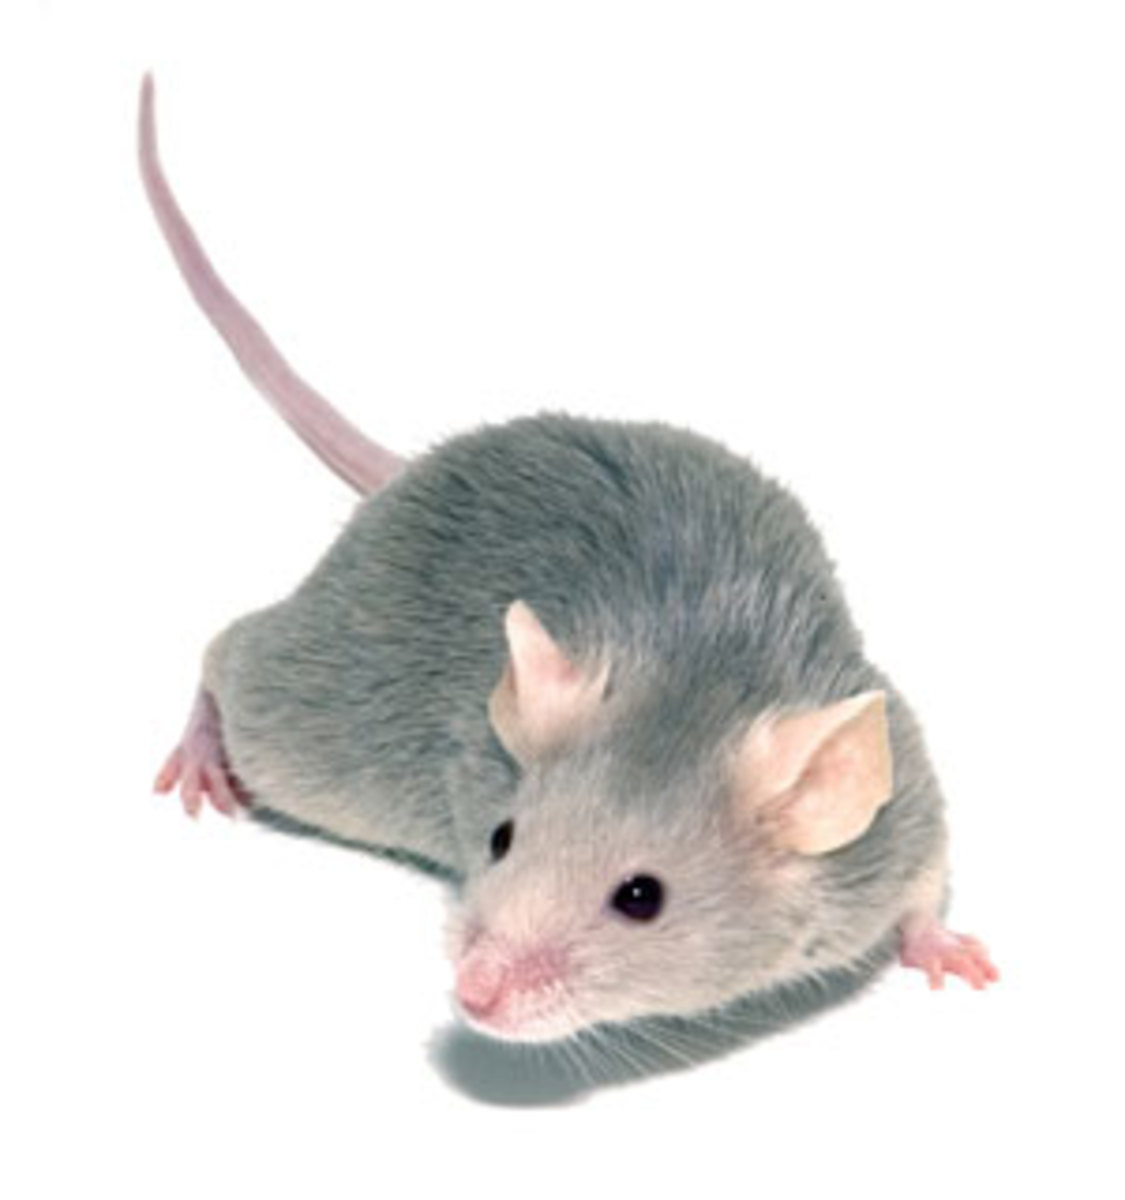 Mouse or Mus